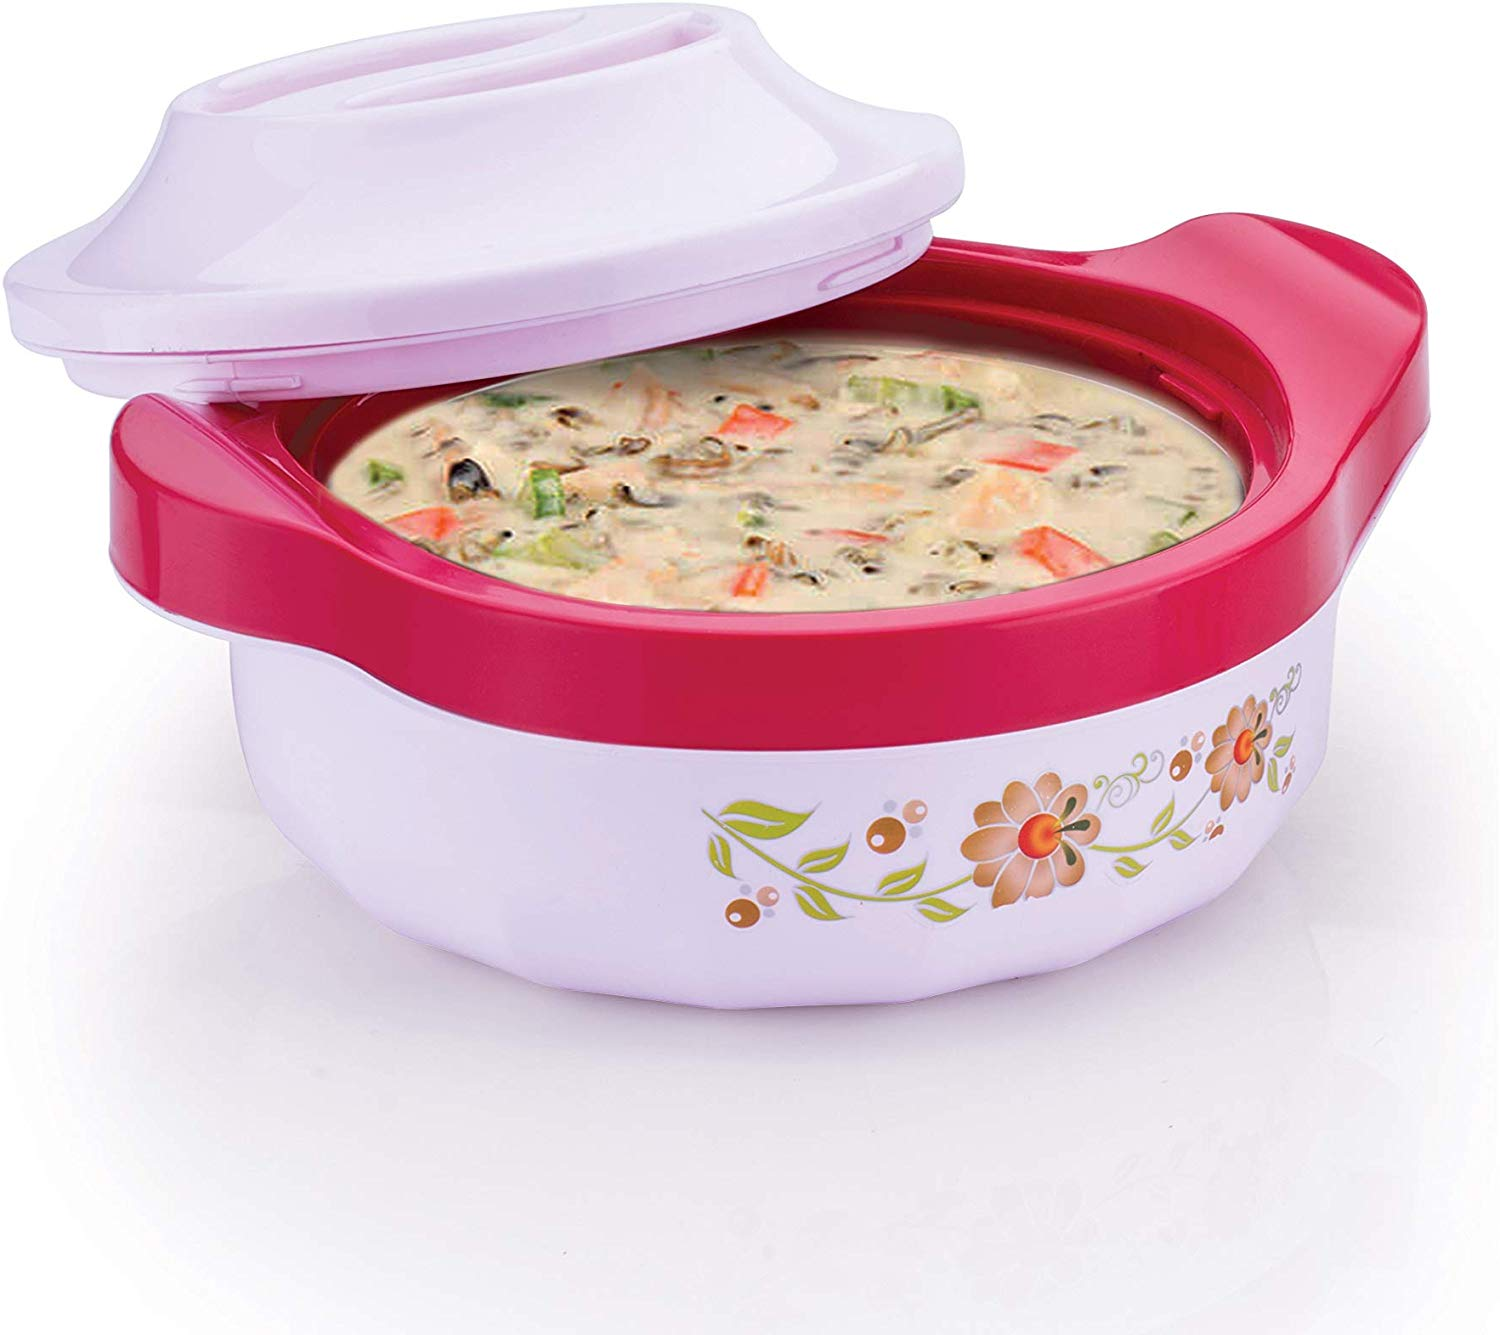 Kuber Industries Floral Design High Quality Plastic Insulated Steel Casseroles,750 ML (Light Pink) - CTKTC30899